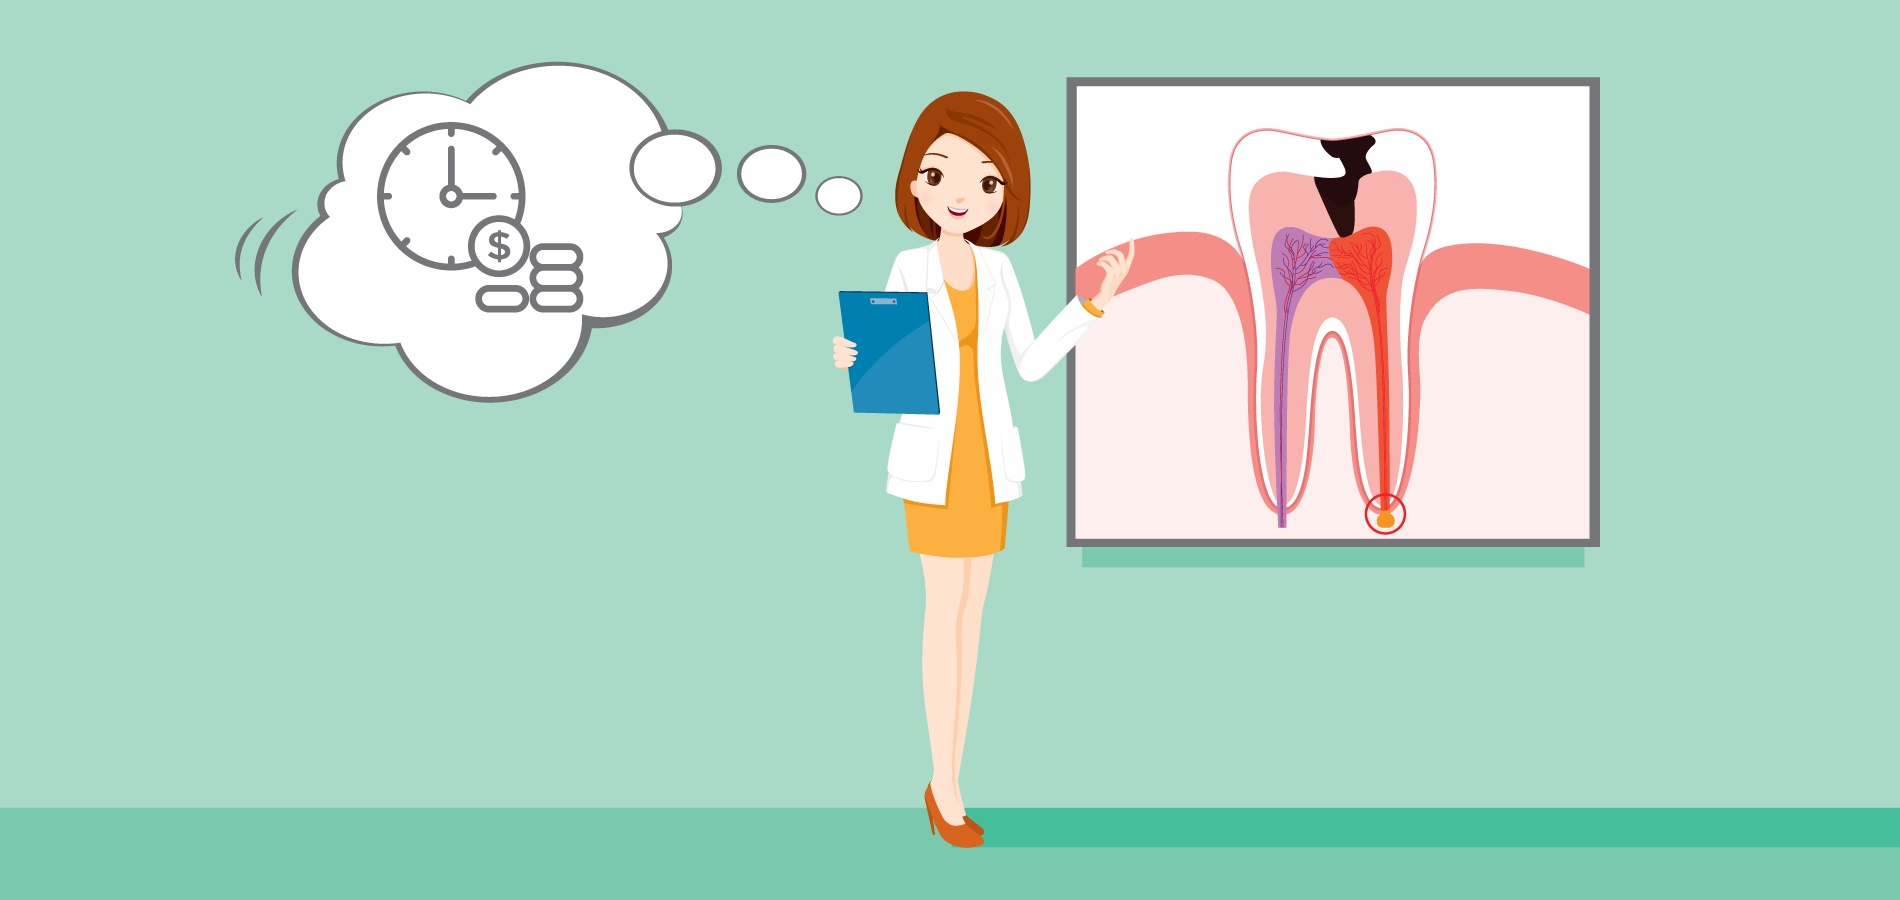 Root Canal Treatment root canal cost root canal procedure time